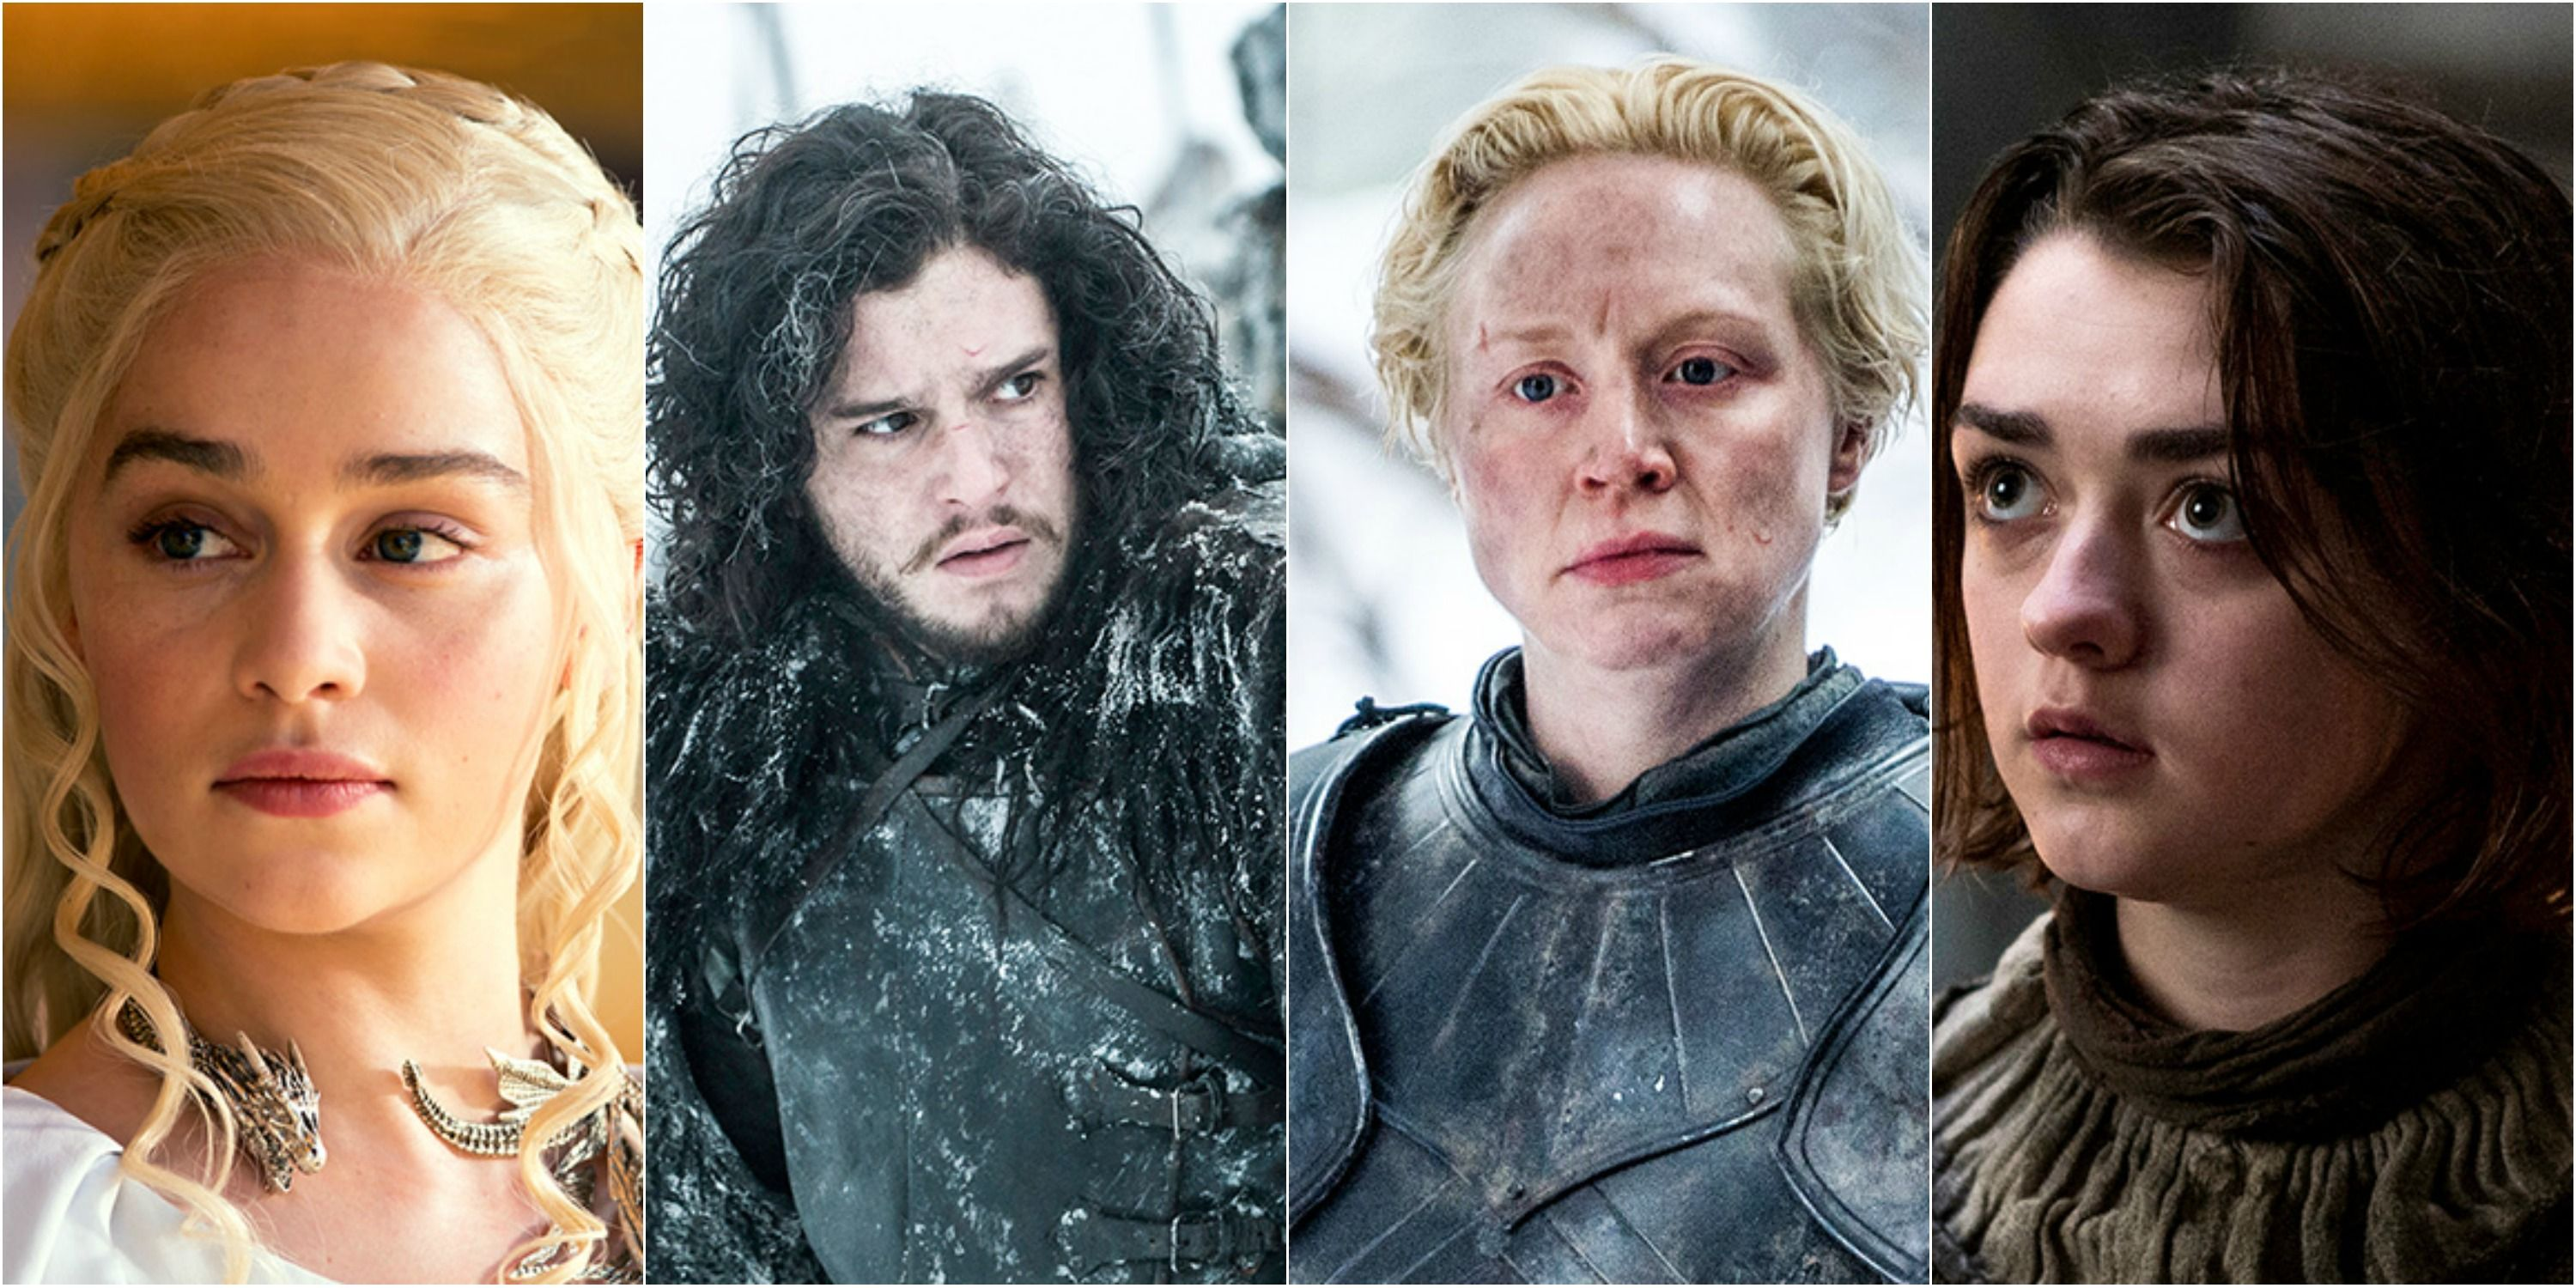 See What The Game of Thrones' Cast Looks Like in RealLife